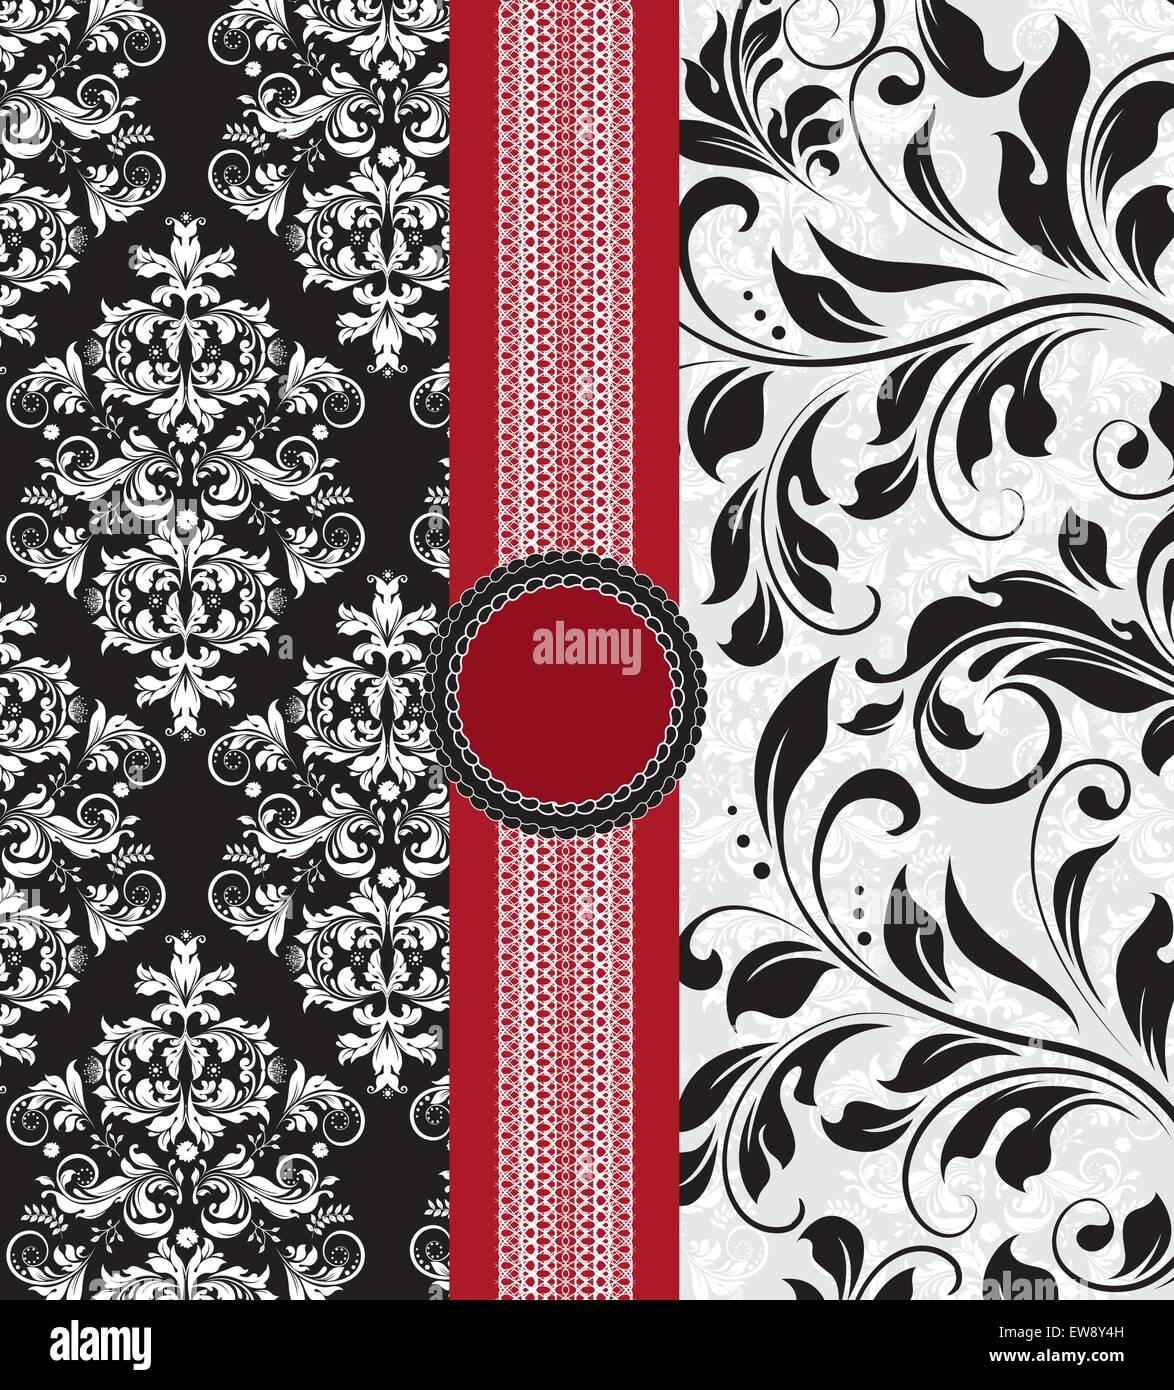 Vintage Background With Ornate Elegant Abstract Floral Design Black